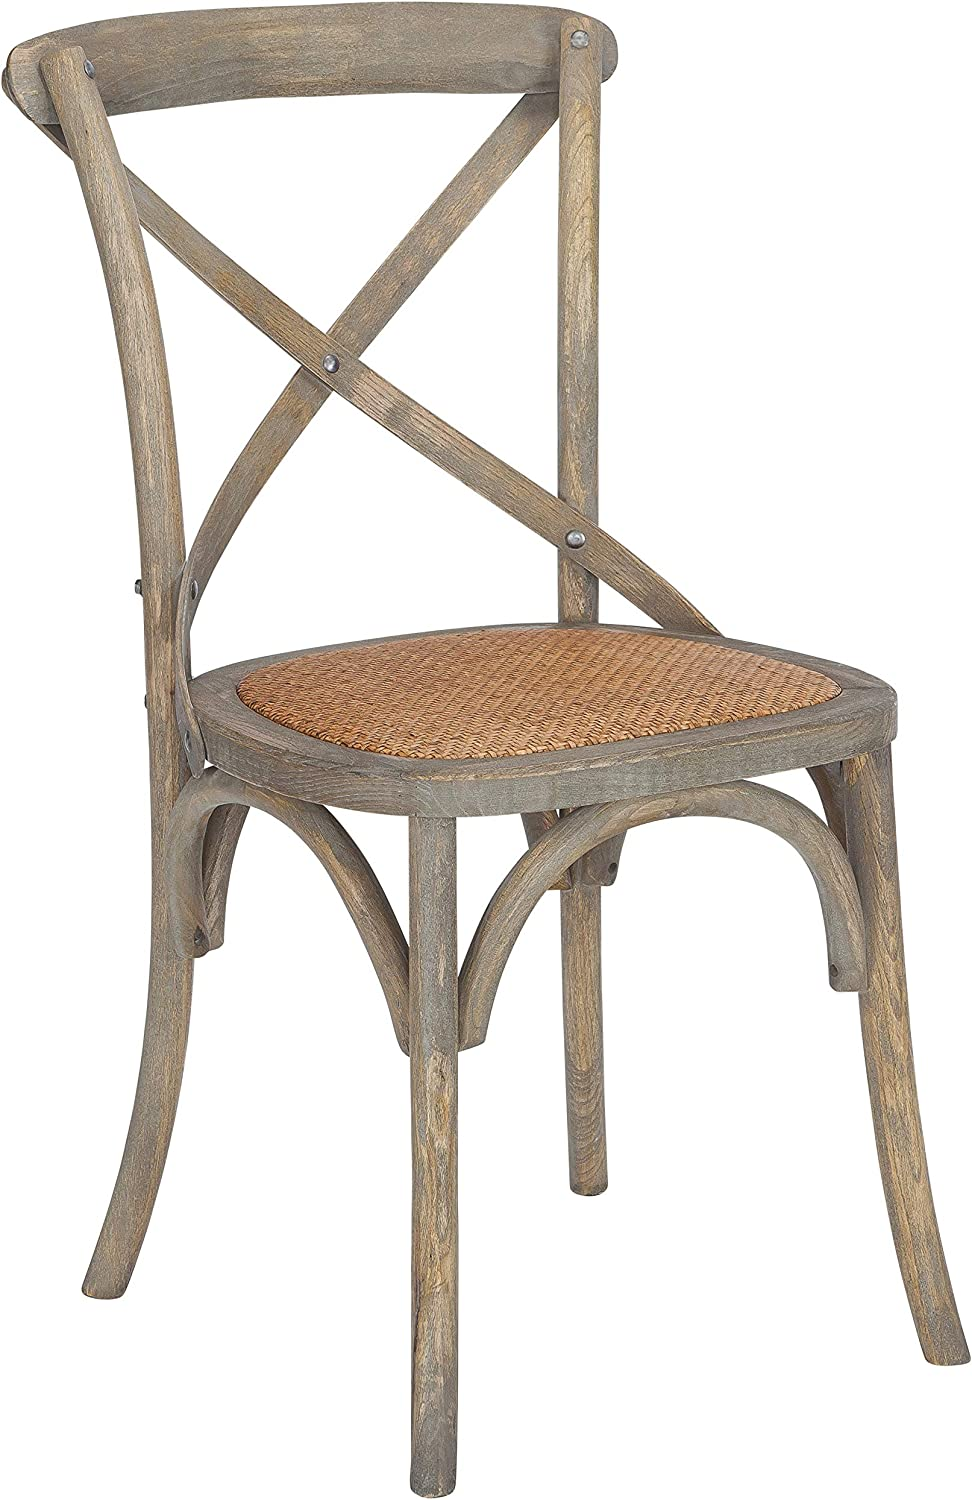 POLY BARK Poly and Bark Cafton Crossback Modern Wooden Dining Chair, Fabric Woven Seat, Fully Assembled, Weathered Oak Set of 2